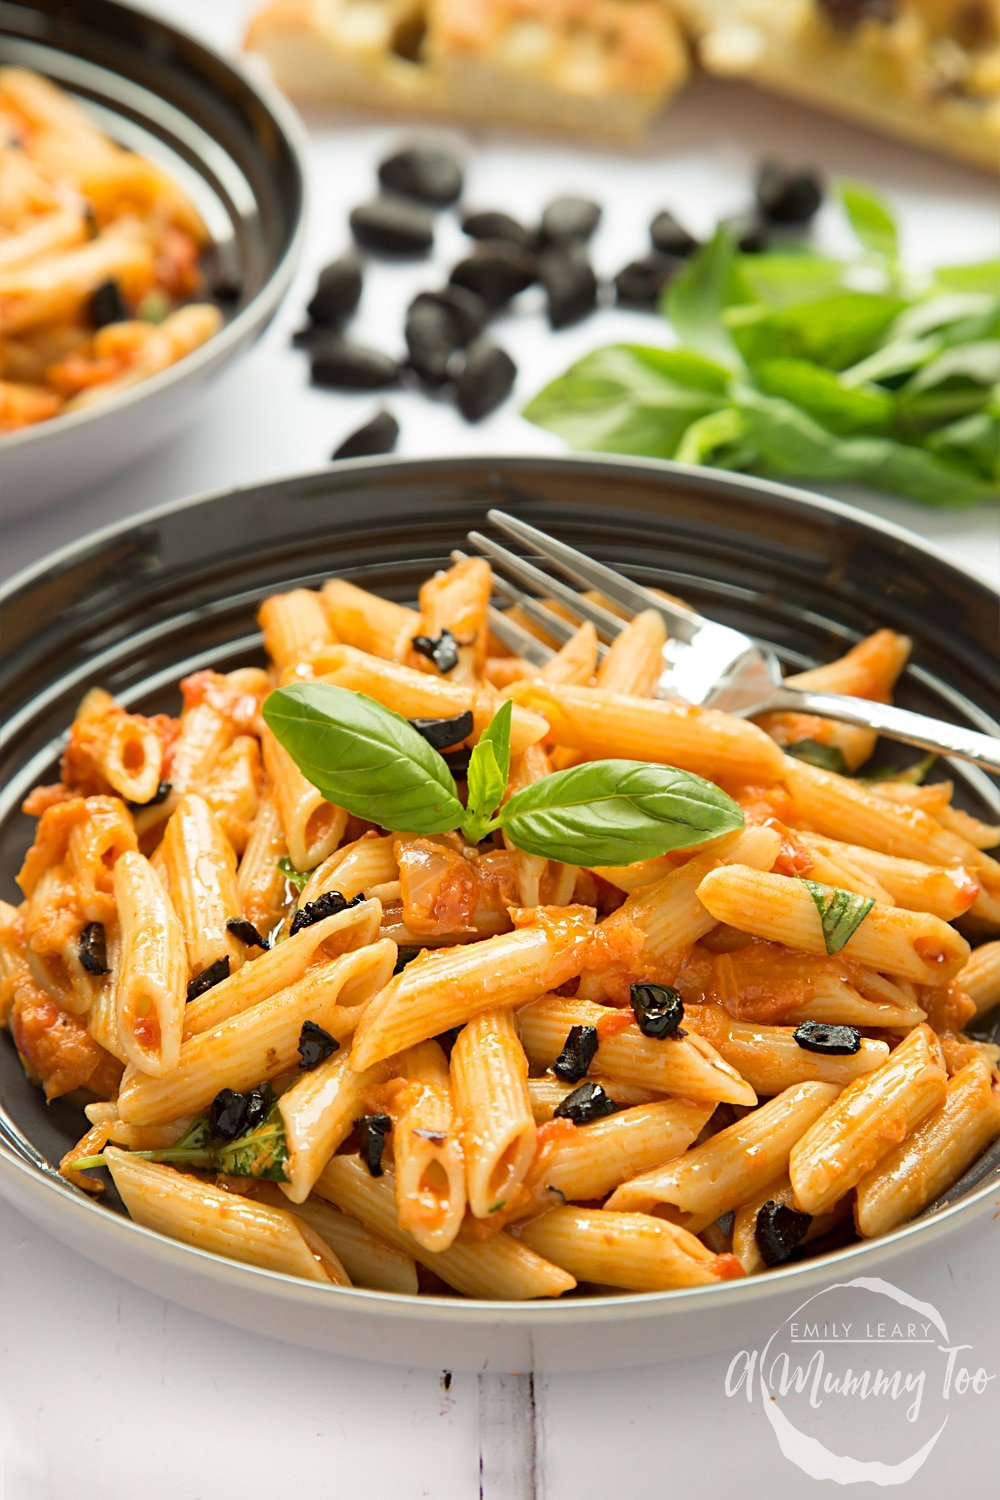 Penne alla black garlic vodka, topped with slivers of black garlic and served ready to enjoy!